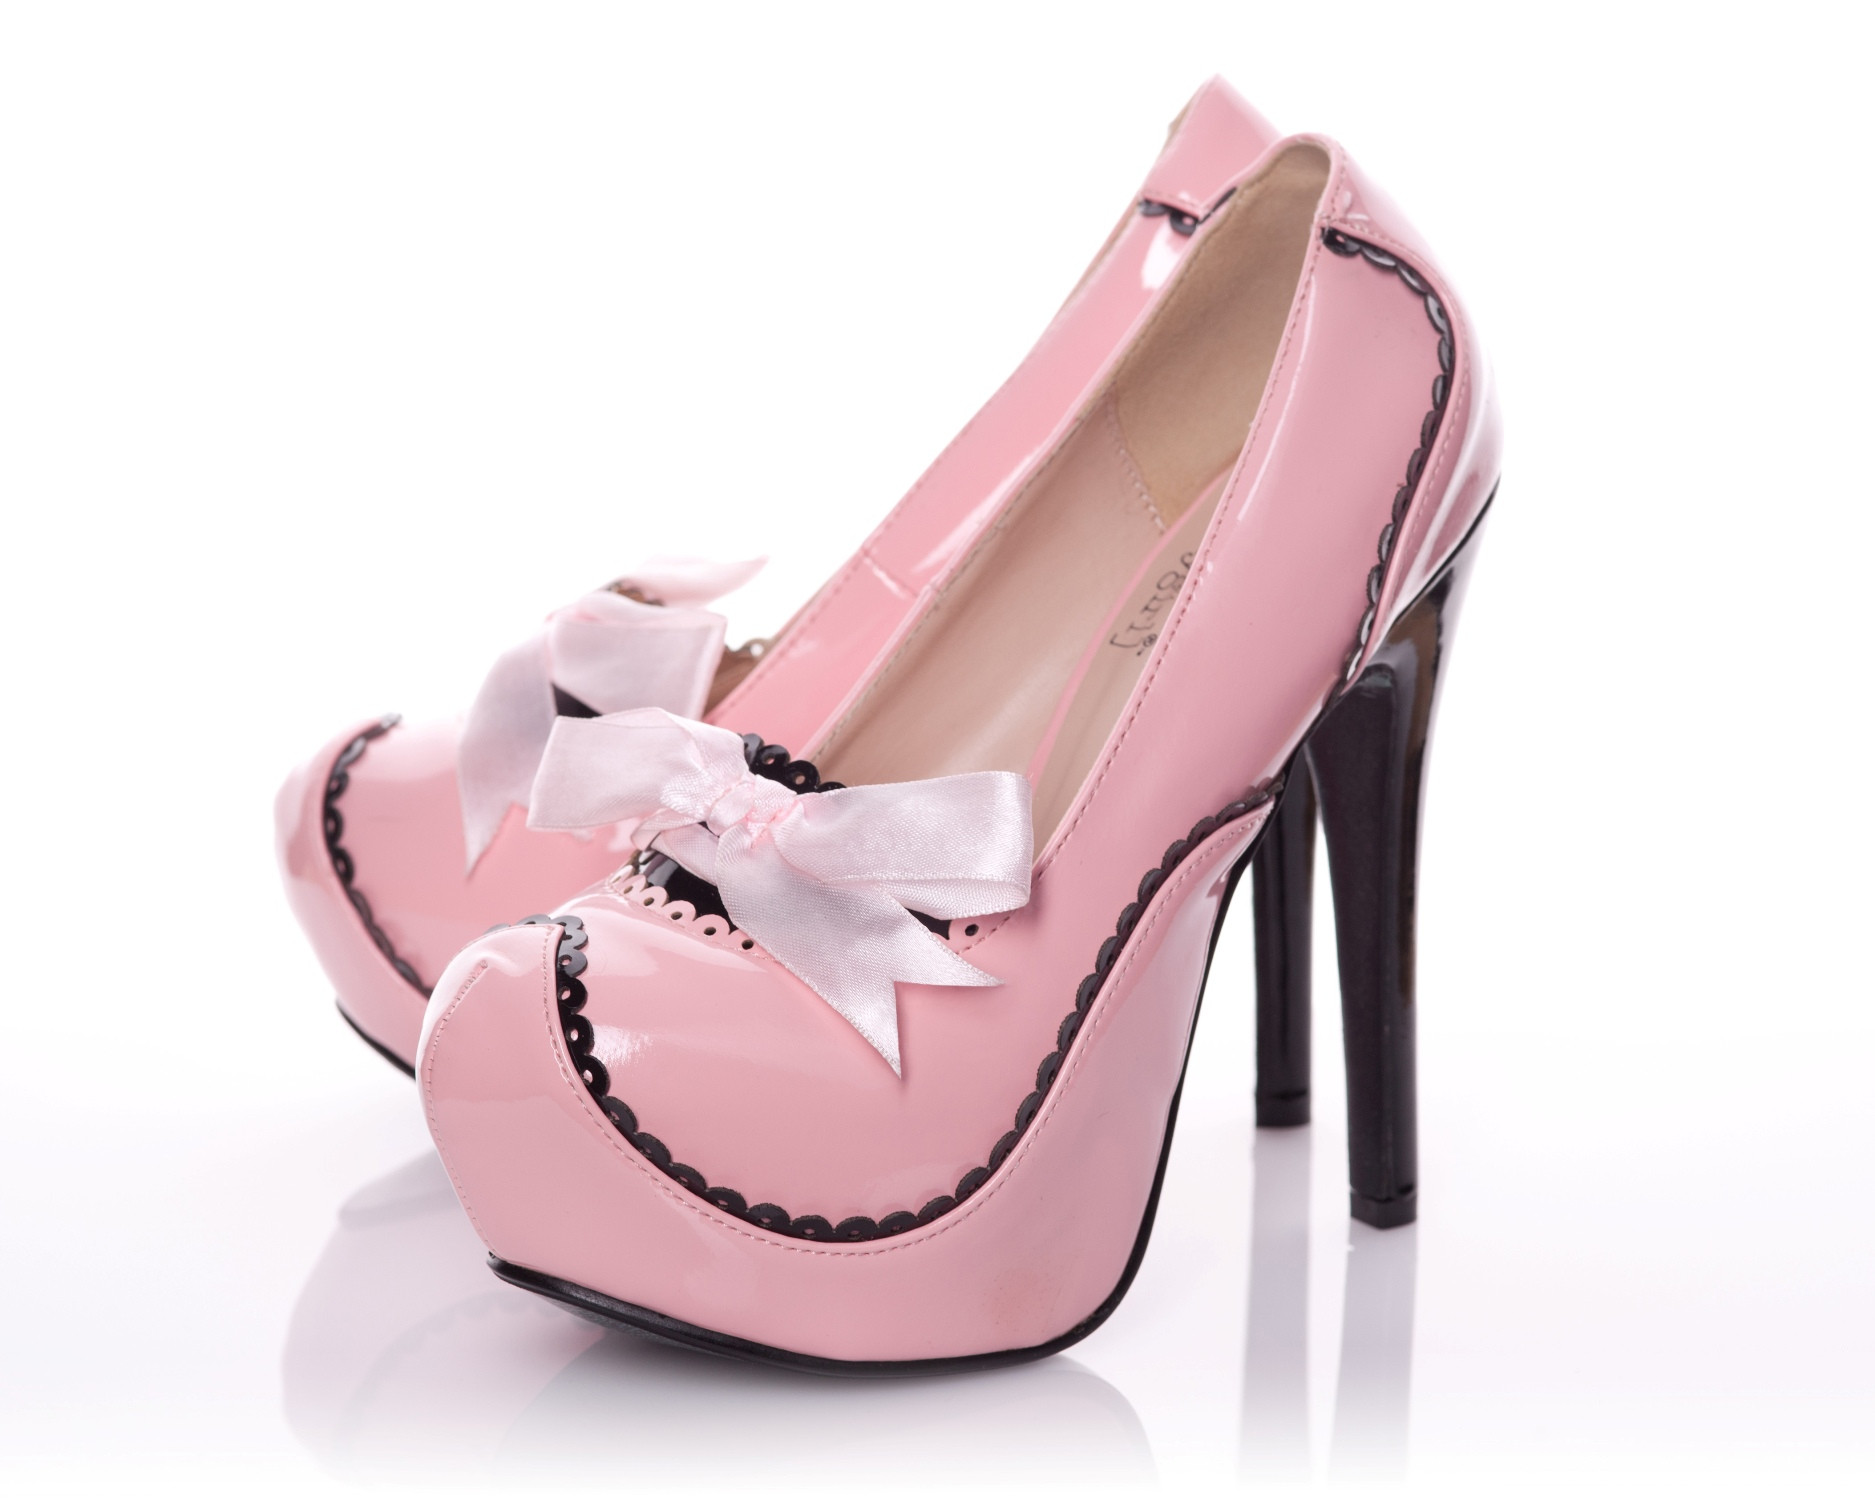 Patent Rounded Toe Platform Pump In Pink With Black Contrast